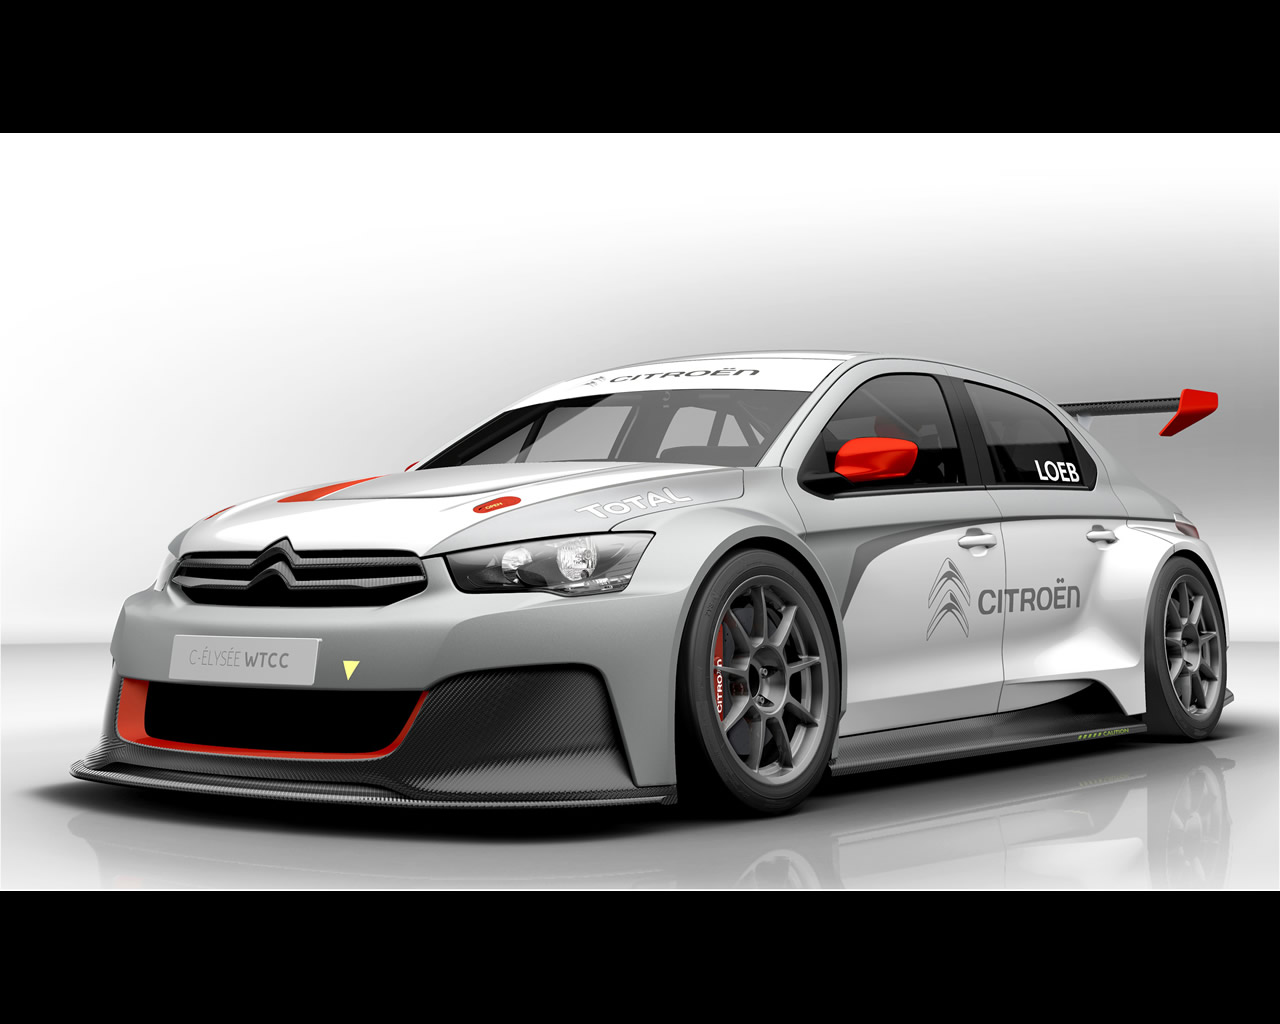 citroen c elysee wtcc 2014 world champion. Black Bedroom Furniture Sets. Home Design Ideas